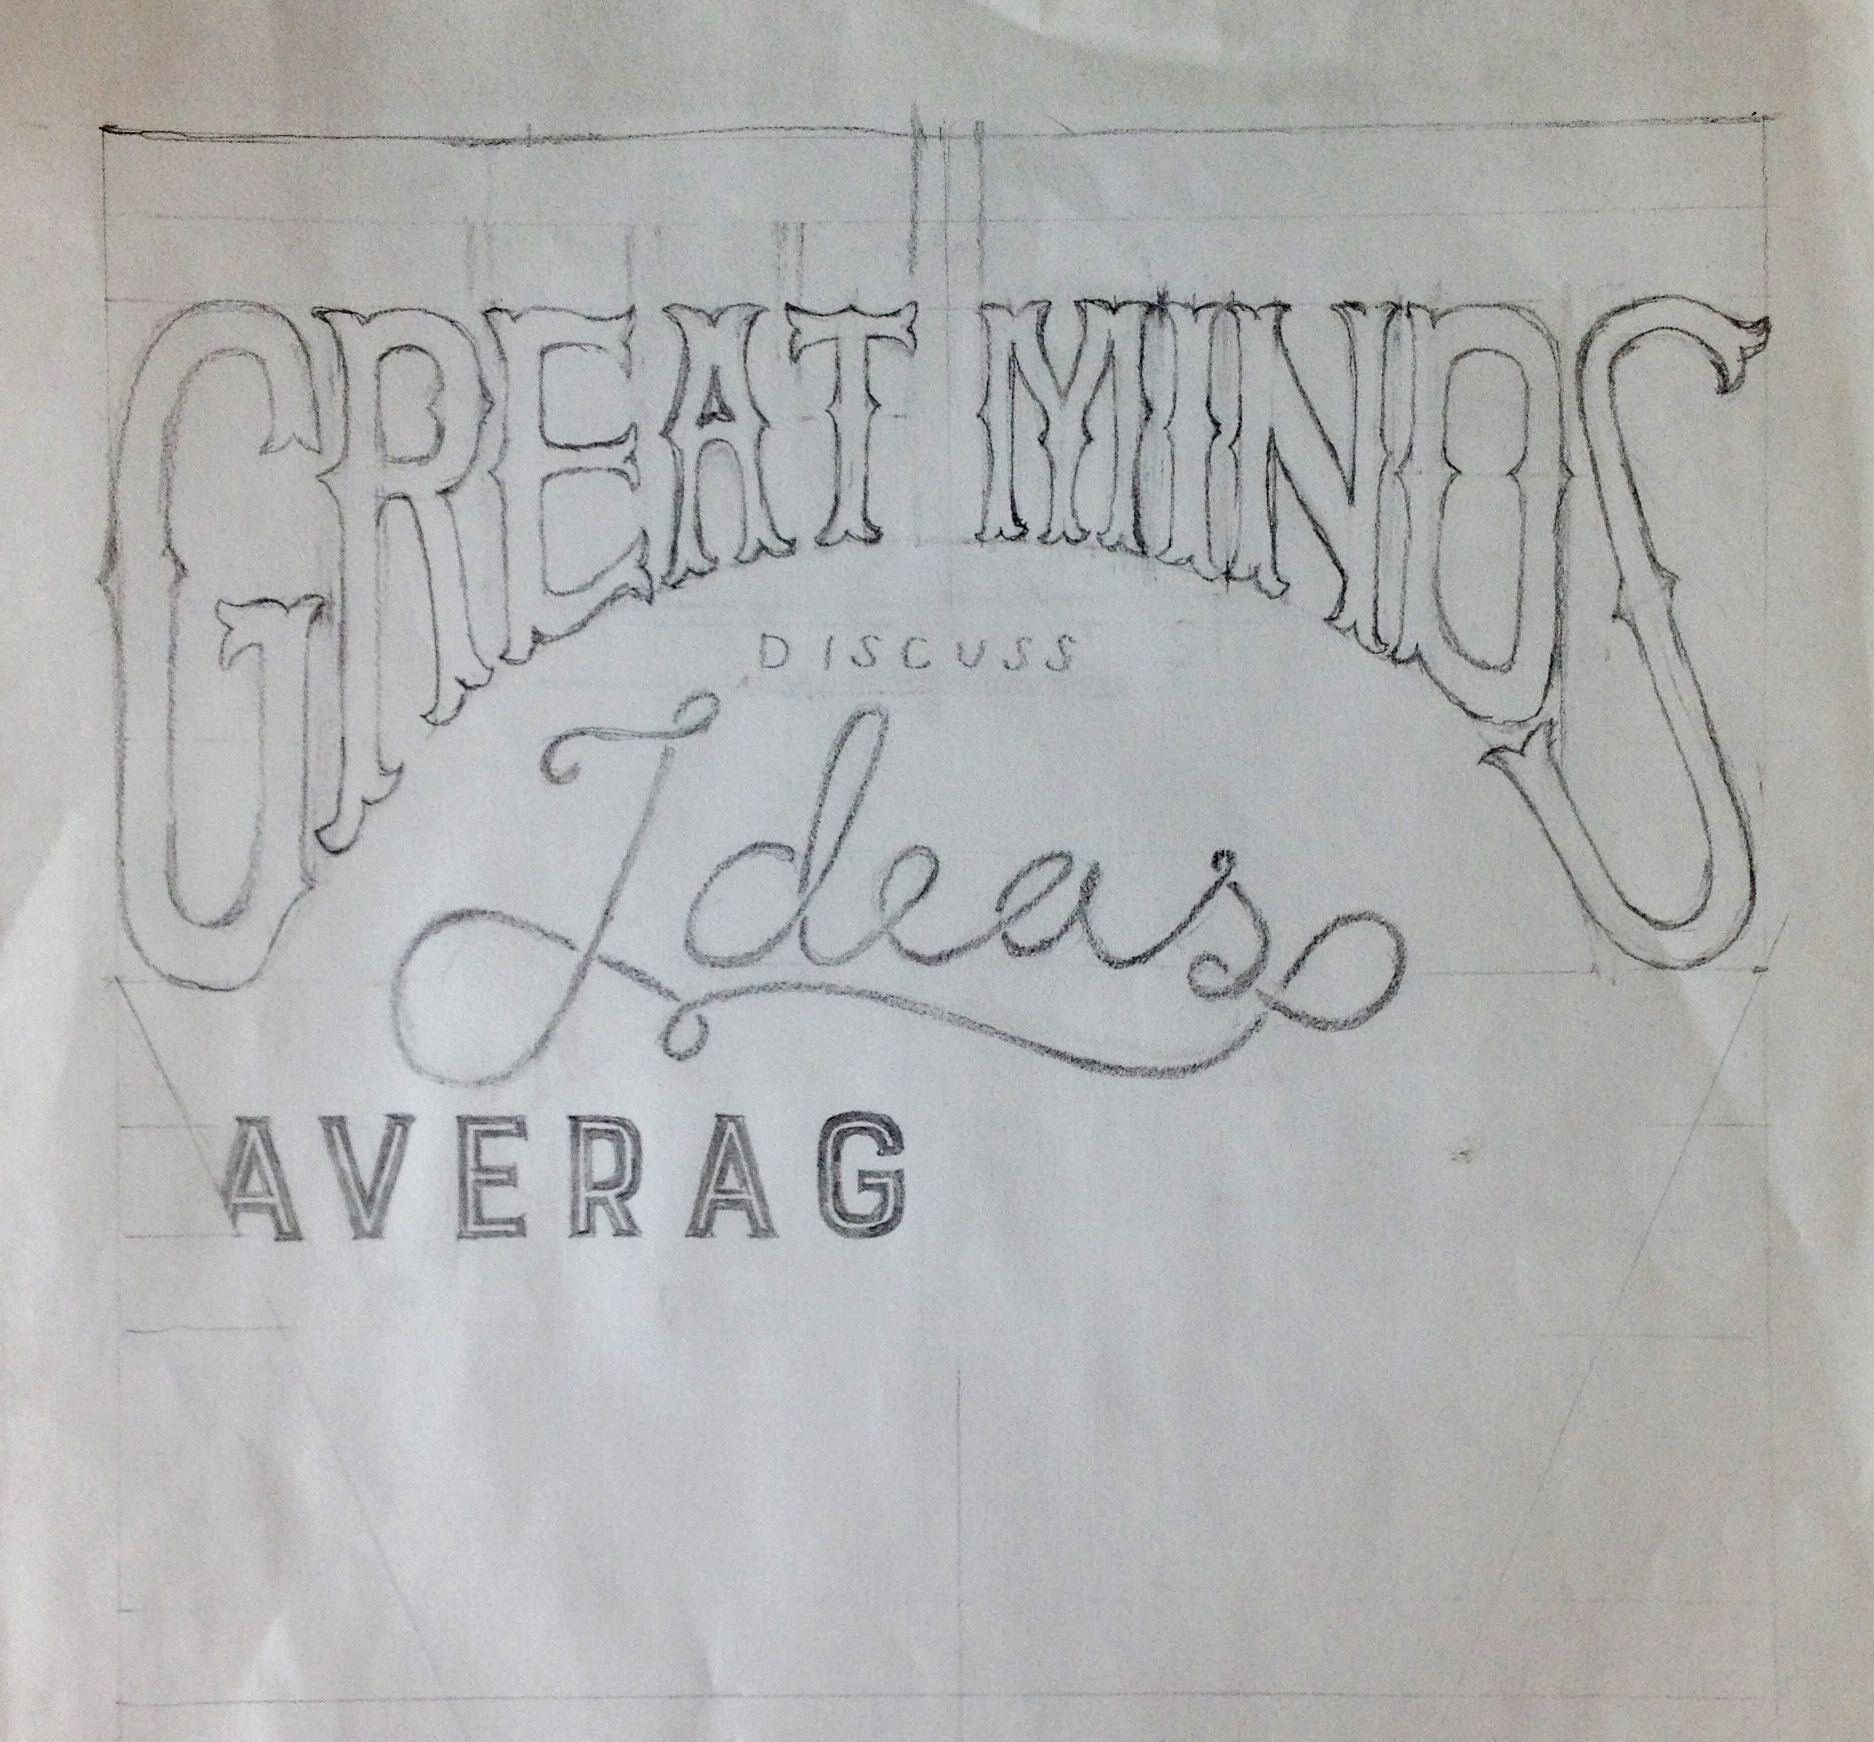 great minds wip